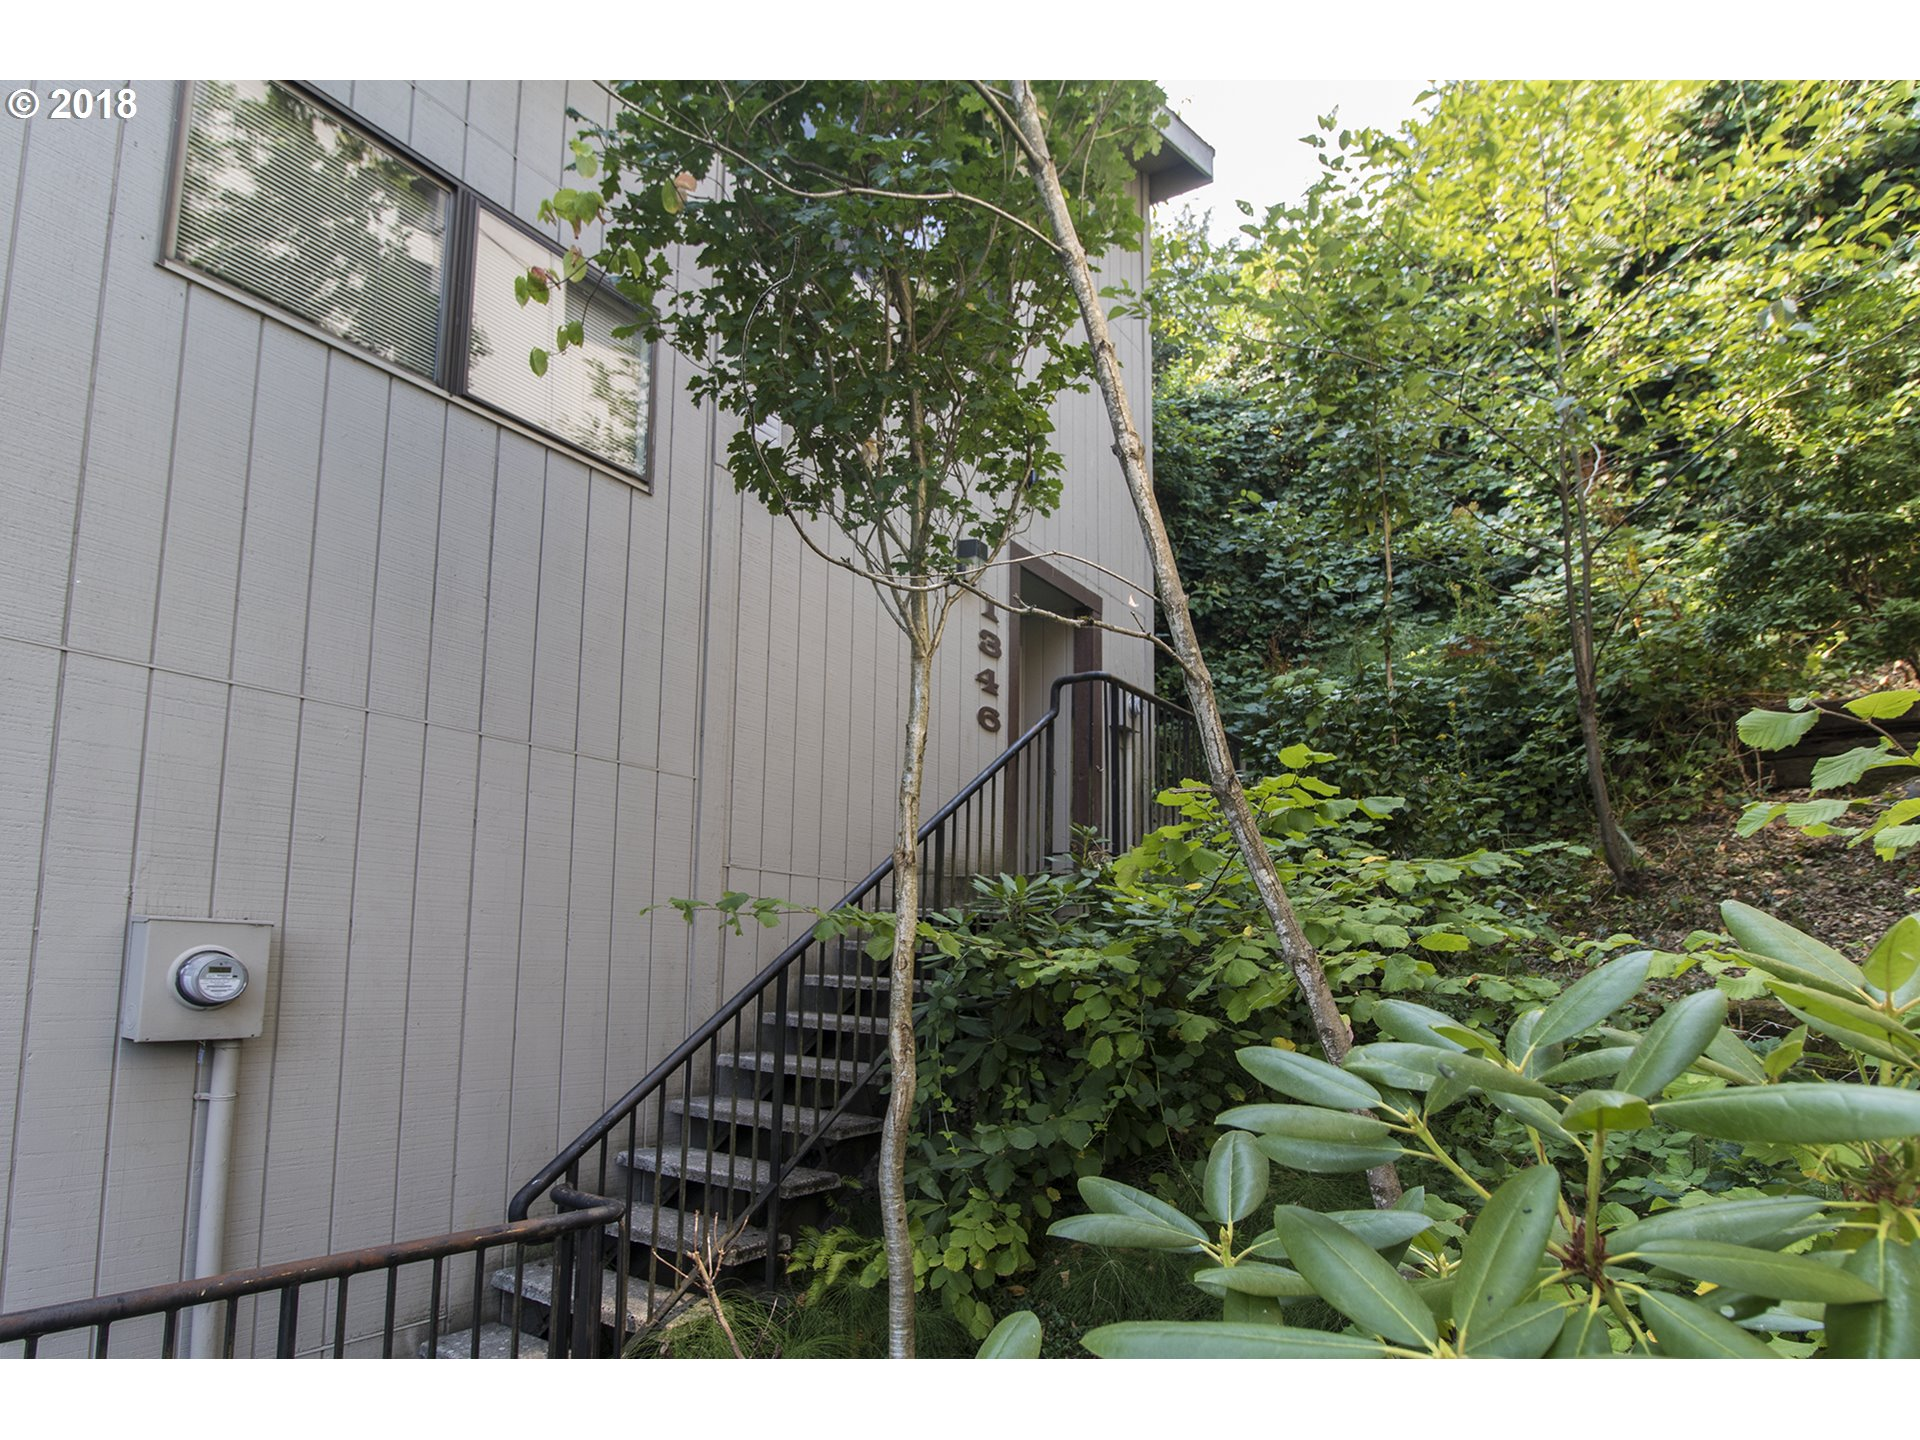 Gorgeous remodeled duplex style townhouse. Great location-Perfect commute to OHSU, PCC, & Lewis & Clark. $35K in upgrades! New Milgard windows, remodeled kitchen w/SS appliances, new hardware,light fixtures, Completely new bathrooms, new trim, paint & recess lighting. New laminate wood flooring on both levels+oak stairs. Energy eff mini split heat/AC in every room-Huge upgrade! No assessments, low HOA & no rental cap. Private decks.